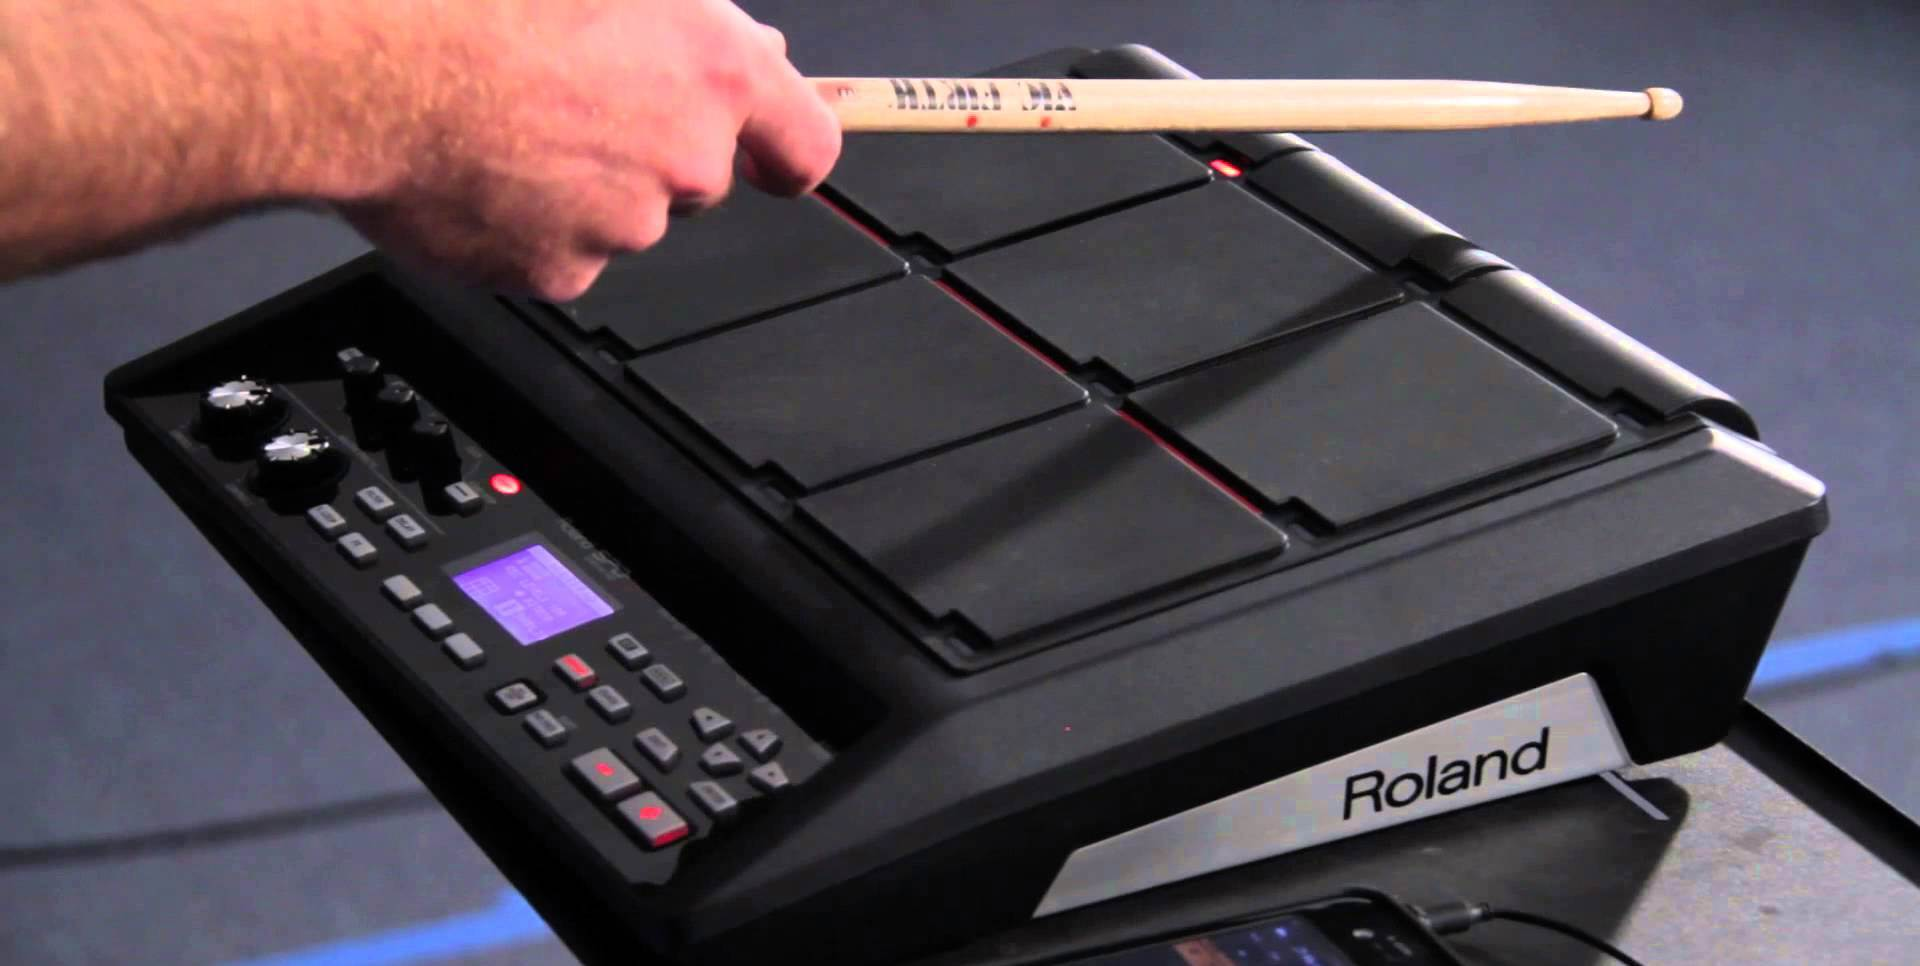 roland spd sx review deep dive on this sampling pad s features and demo sound check lab. Black Bedroom Furniture Sets. Home Design Ideas